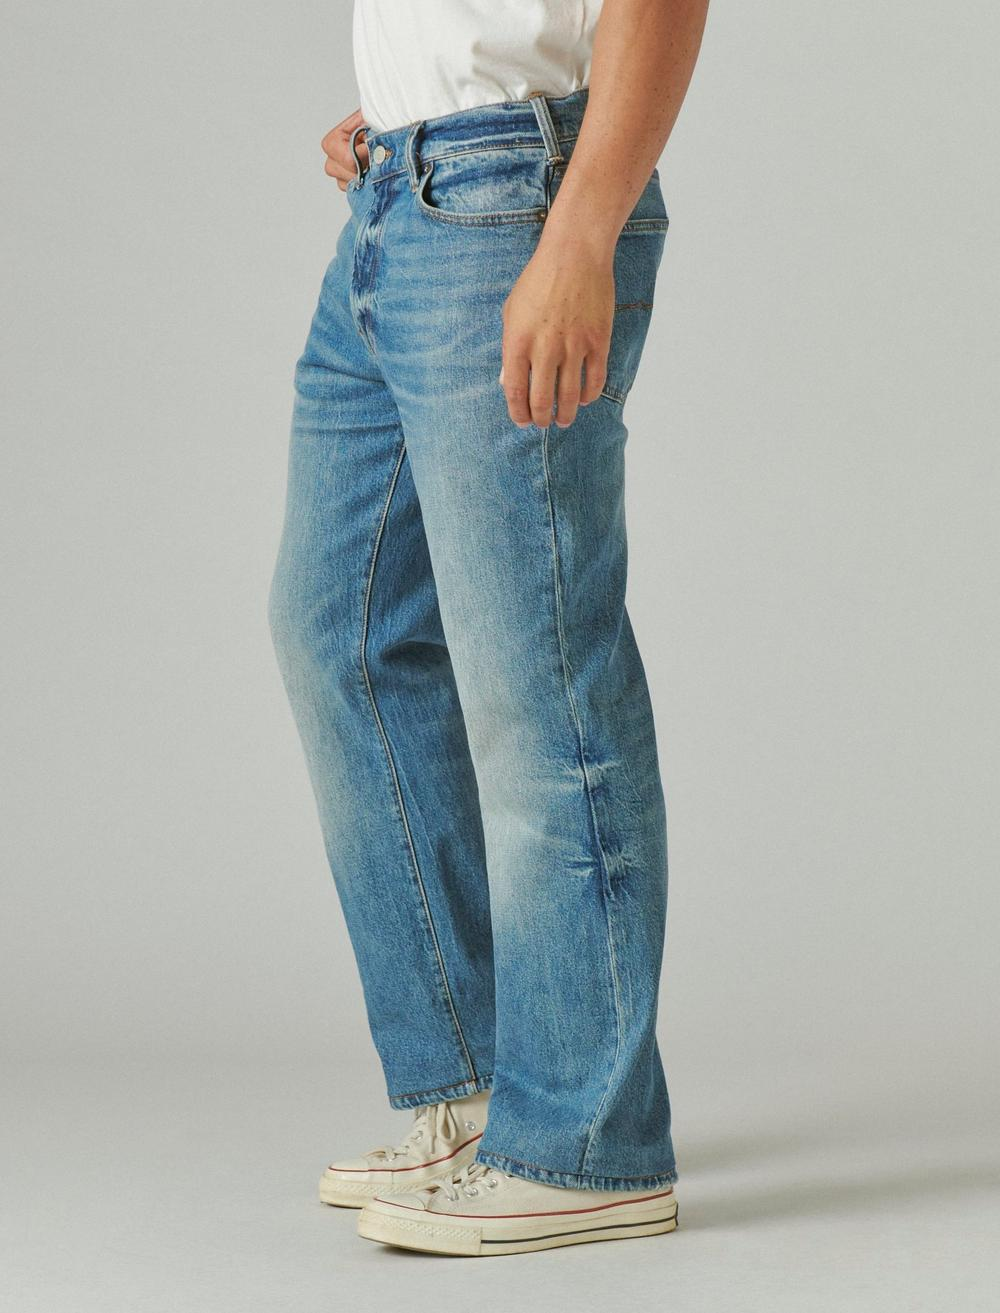 EASY RIDER BOOTCUT JEAN, image 5